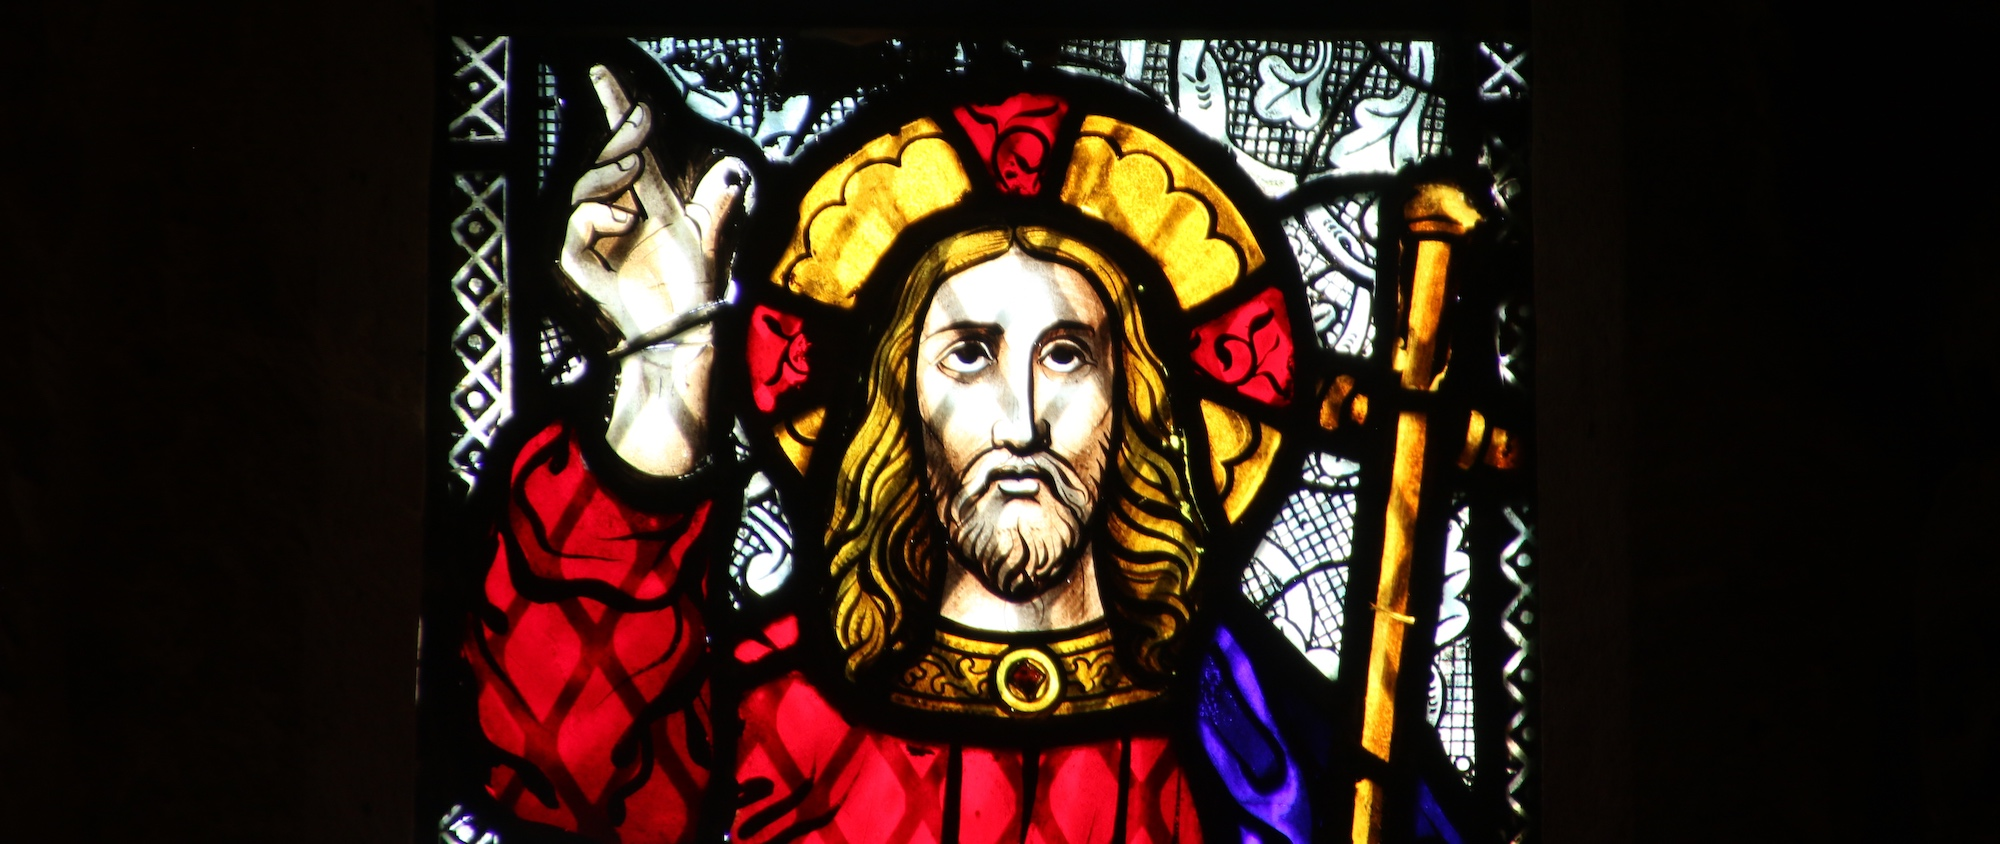 jesus pointing toward the sky on stained glass window